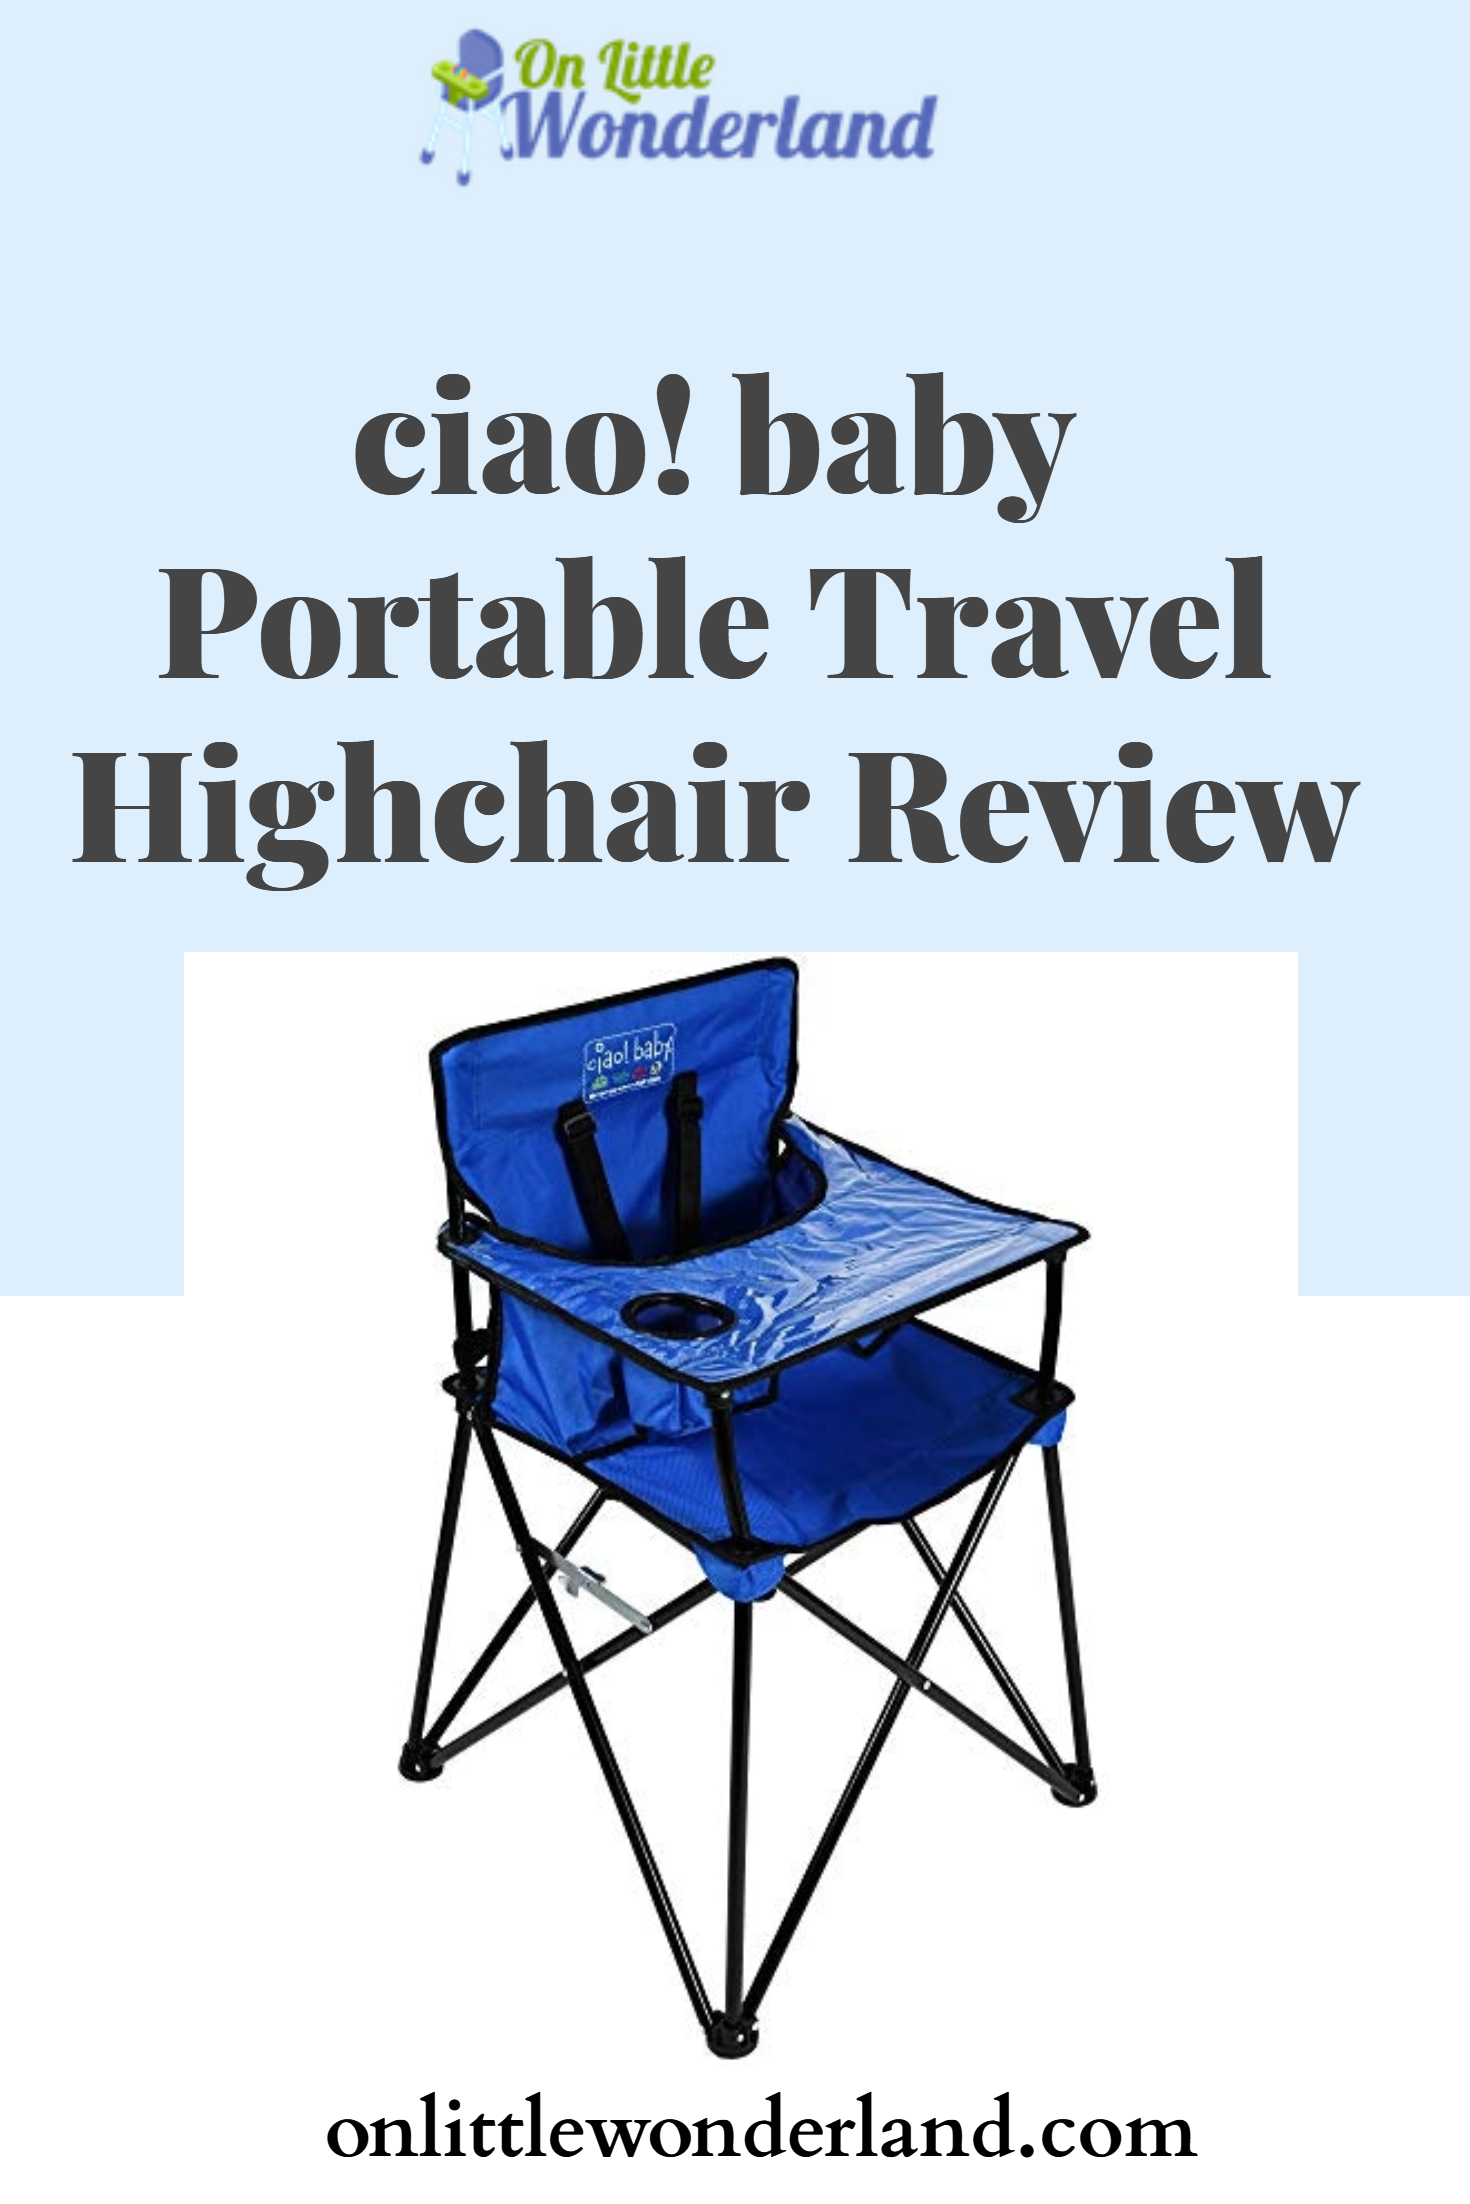 ciao! baby Portable Travel Highchair Review (With images